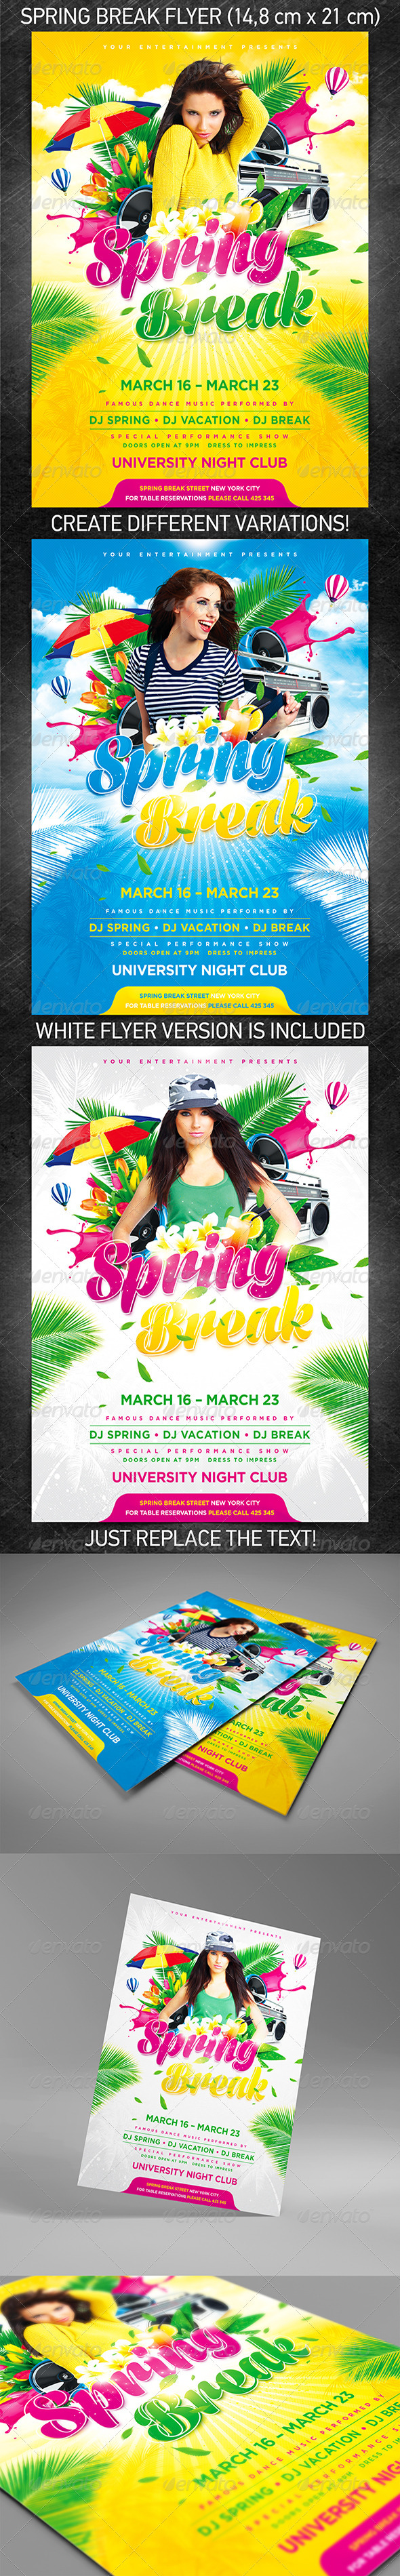 Spring Break Party Flyer - Holidays Events